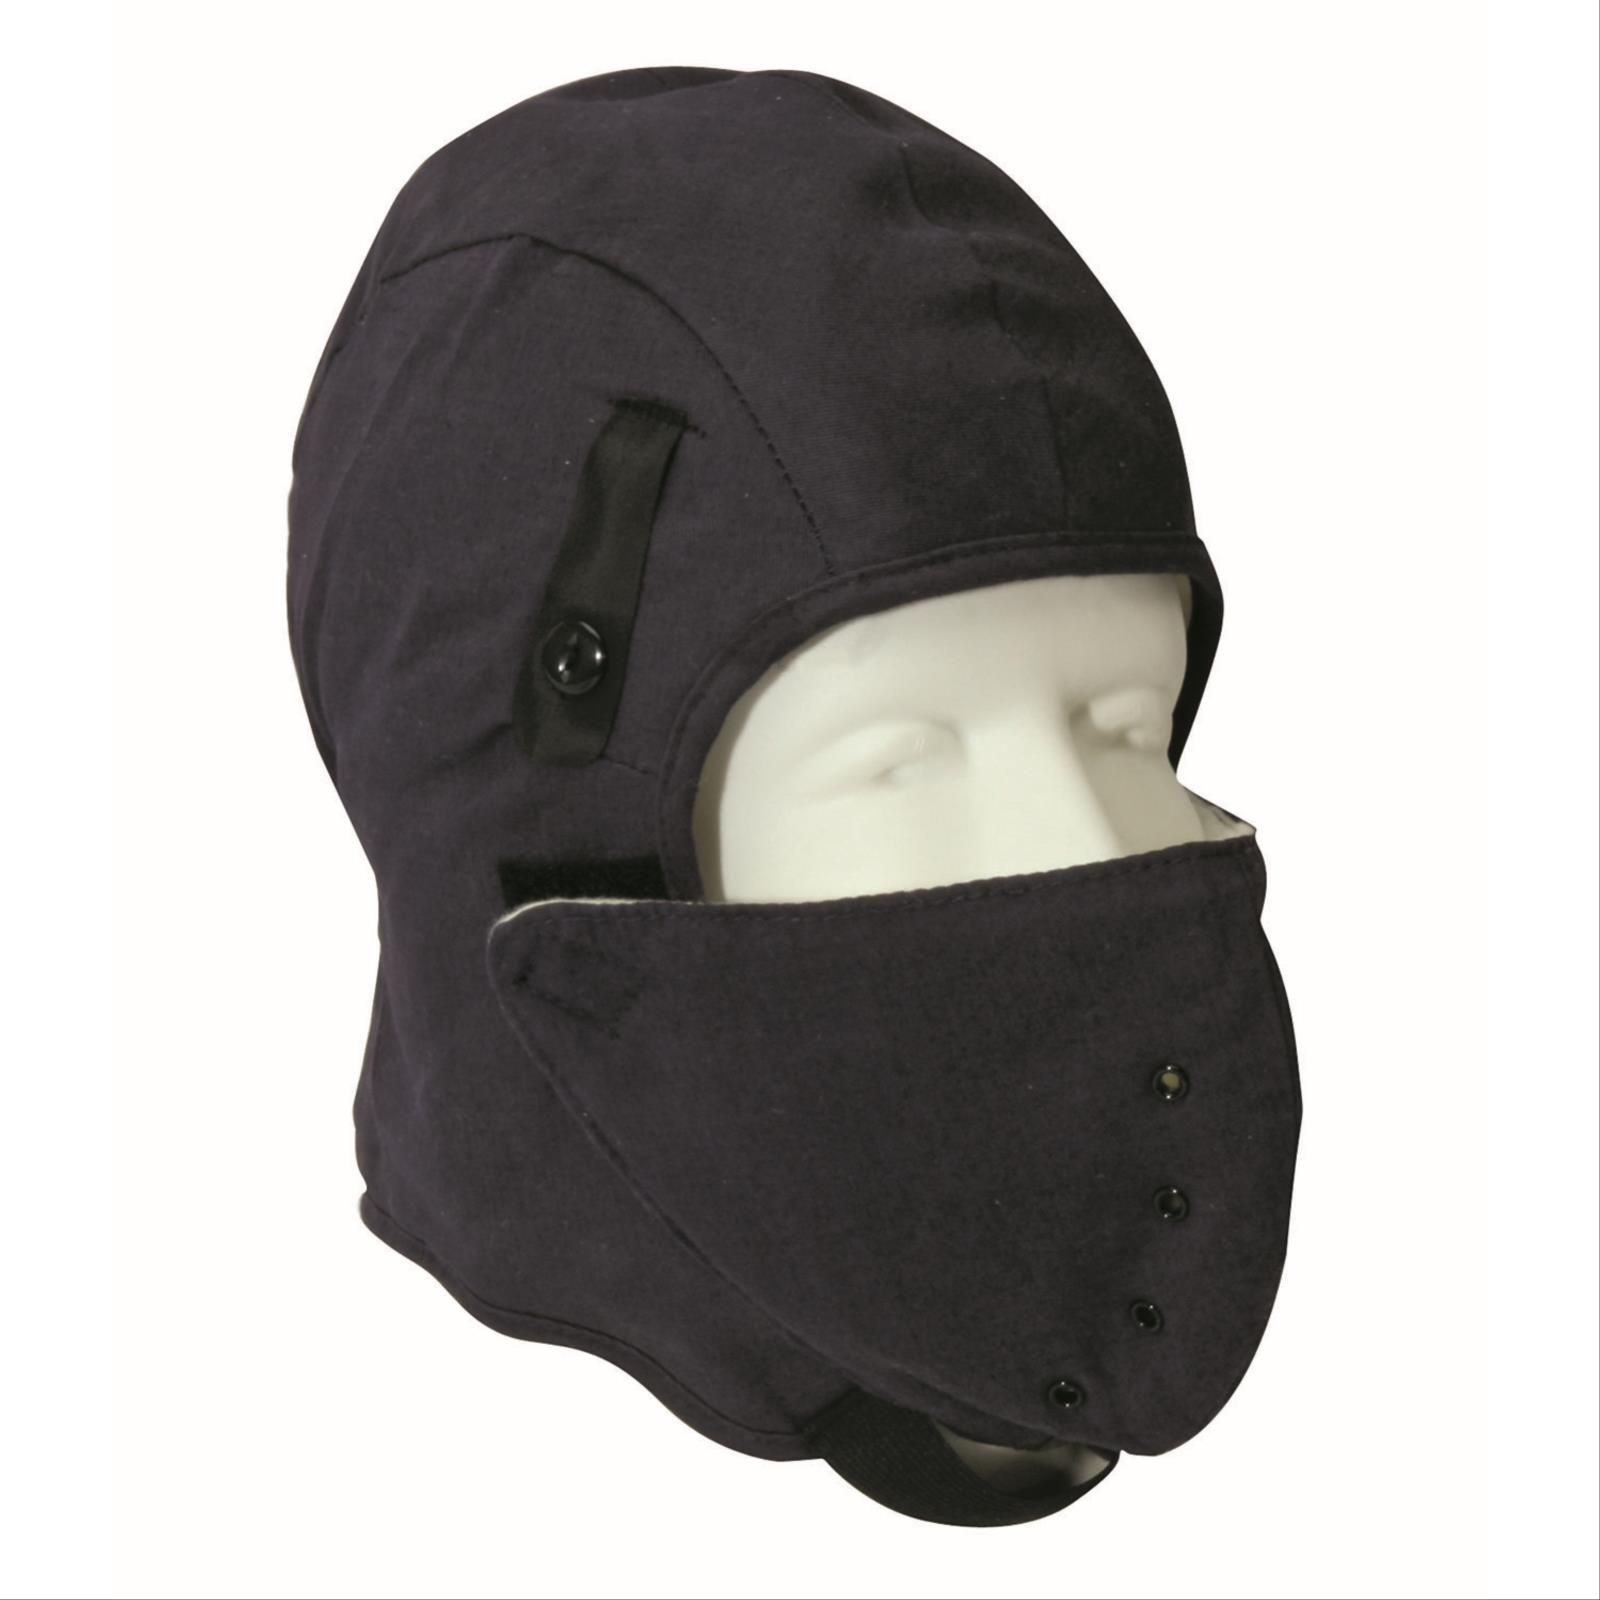 5dca6ef16bc Safety Products Inc - Winter Liners and Caps